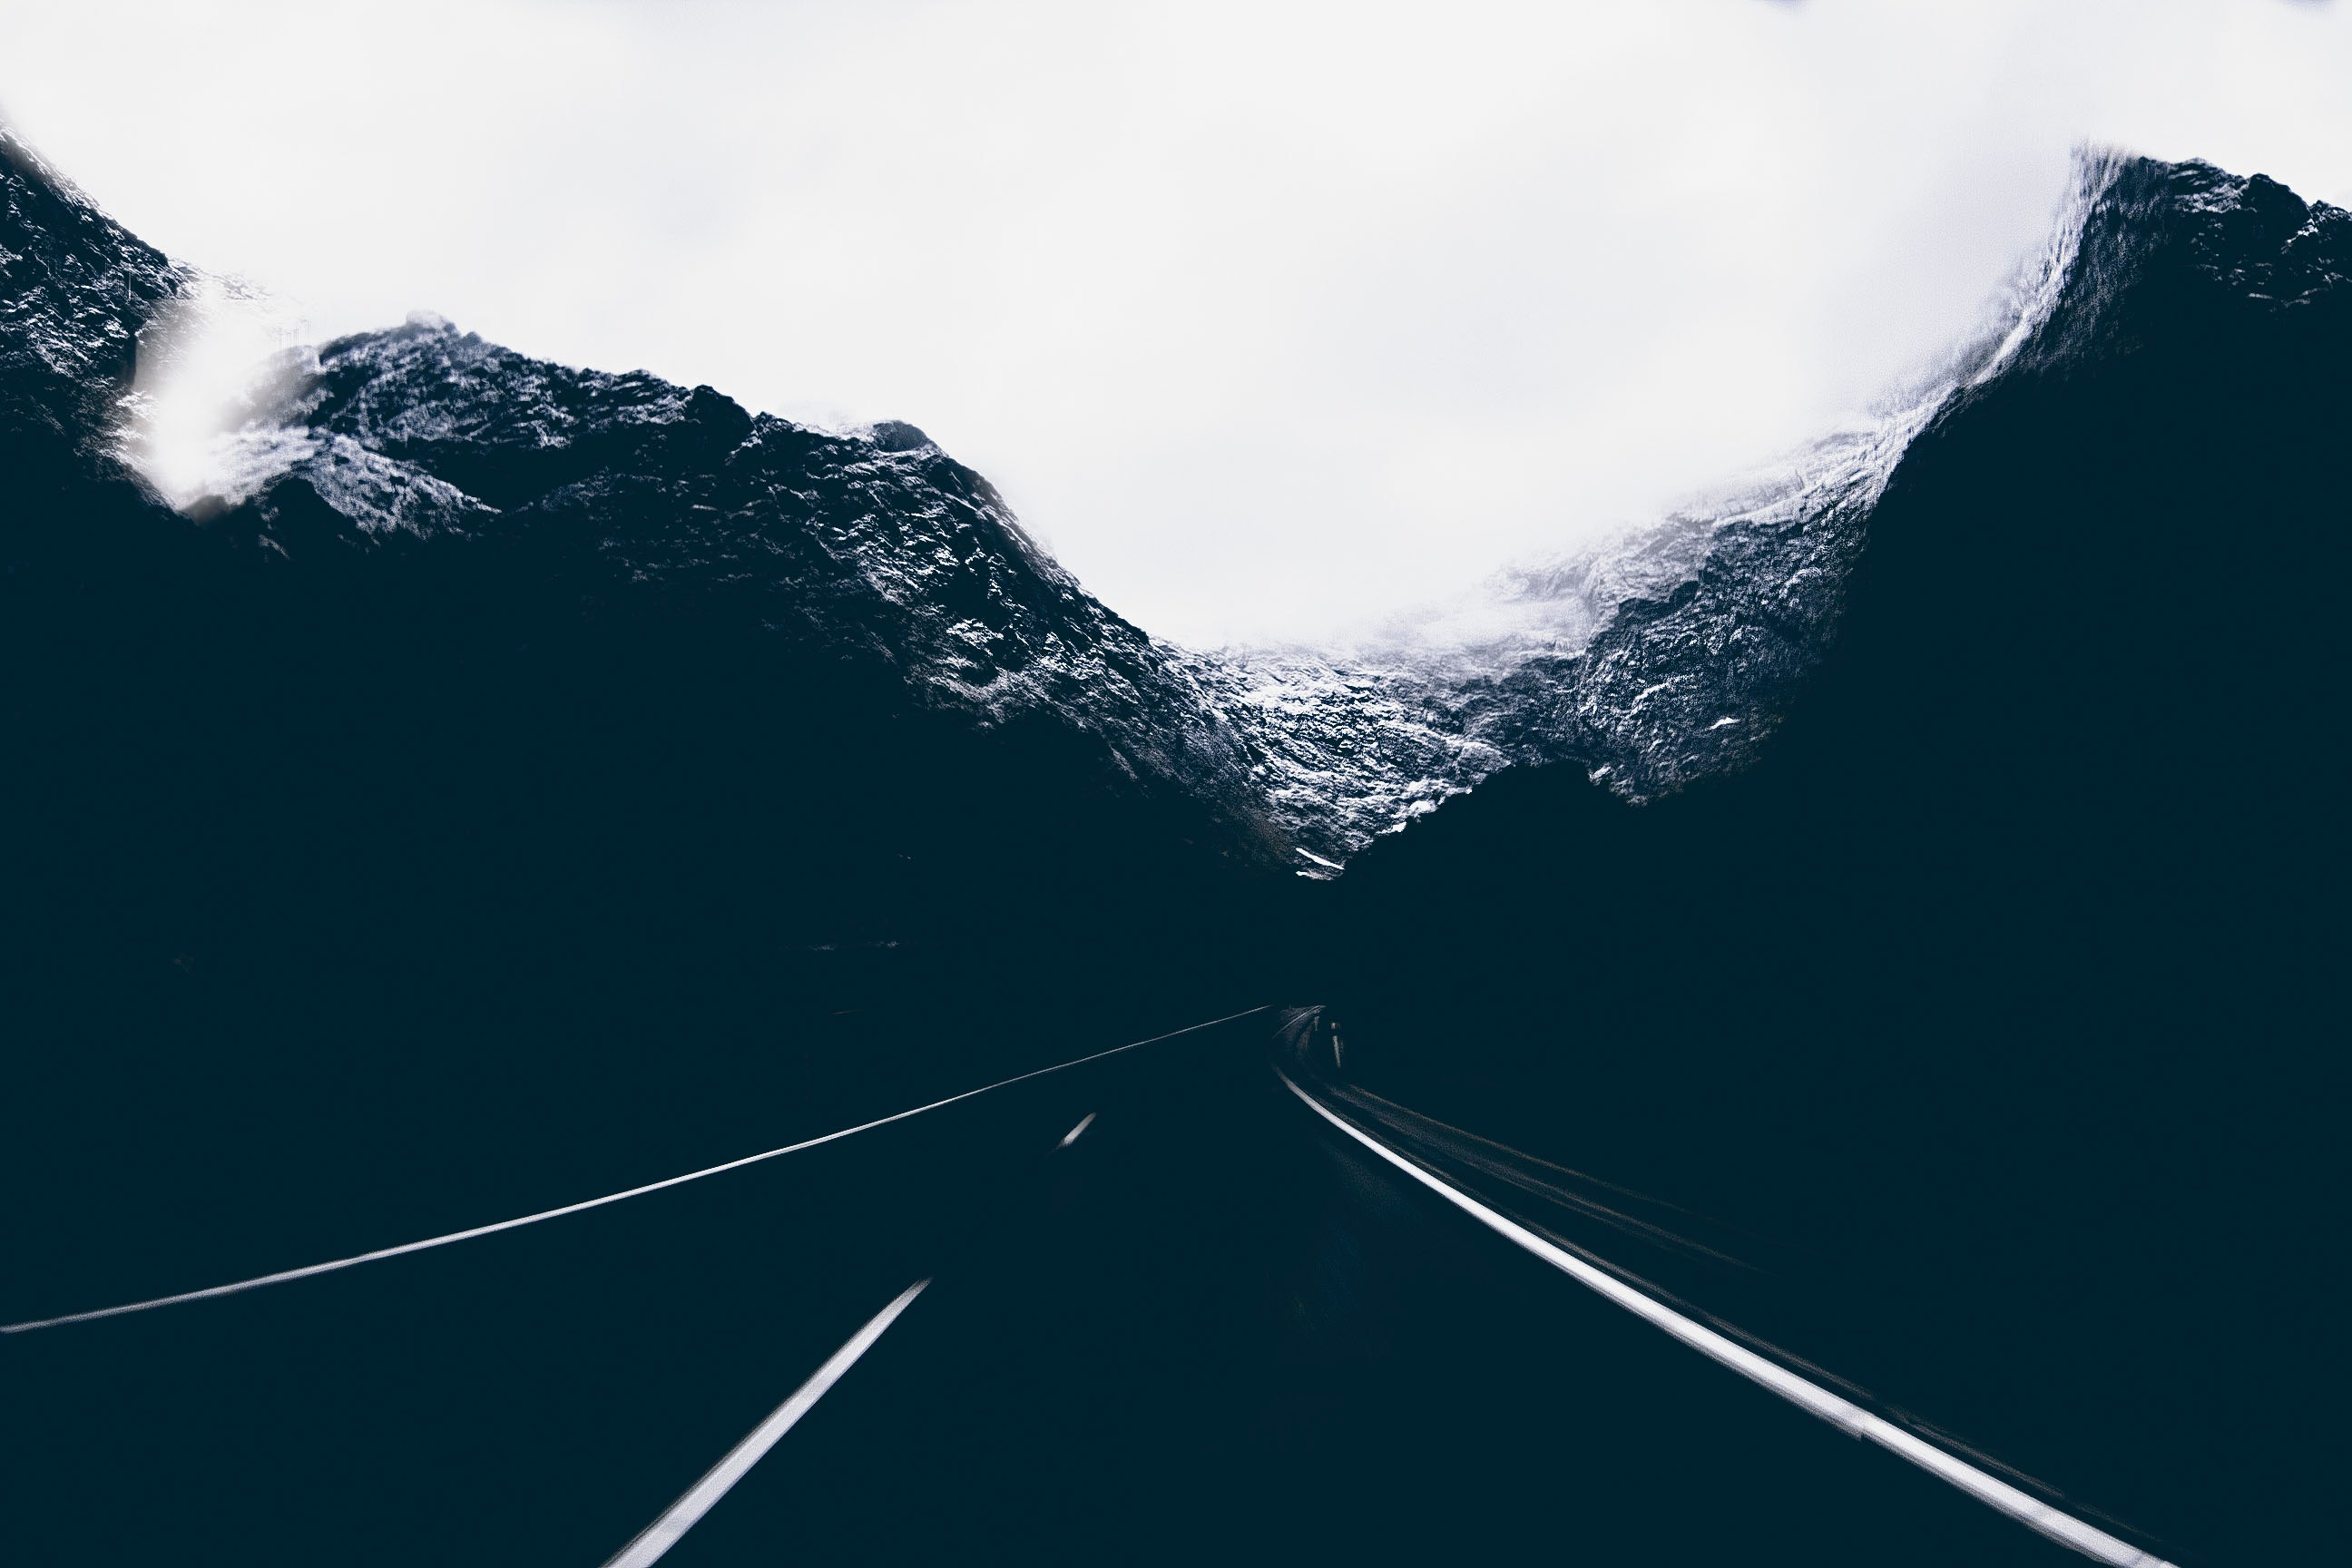 Landscape Photo of Road in the Middle of Mountains, Background, Mountains, Snow, Sky, HQ Photo